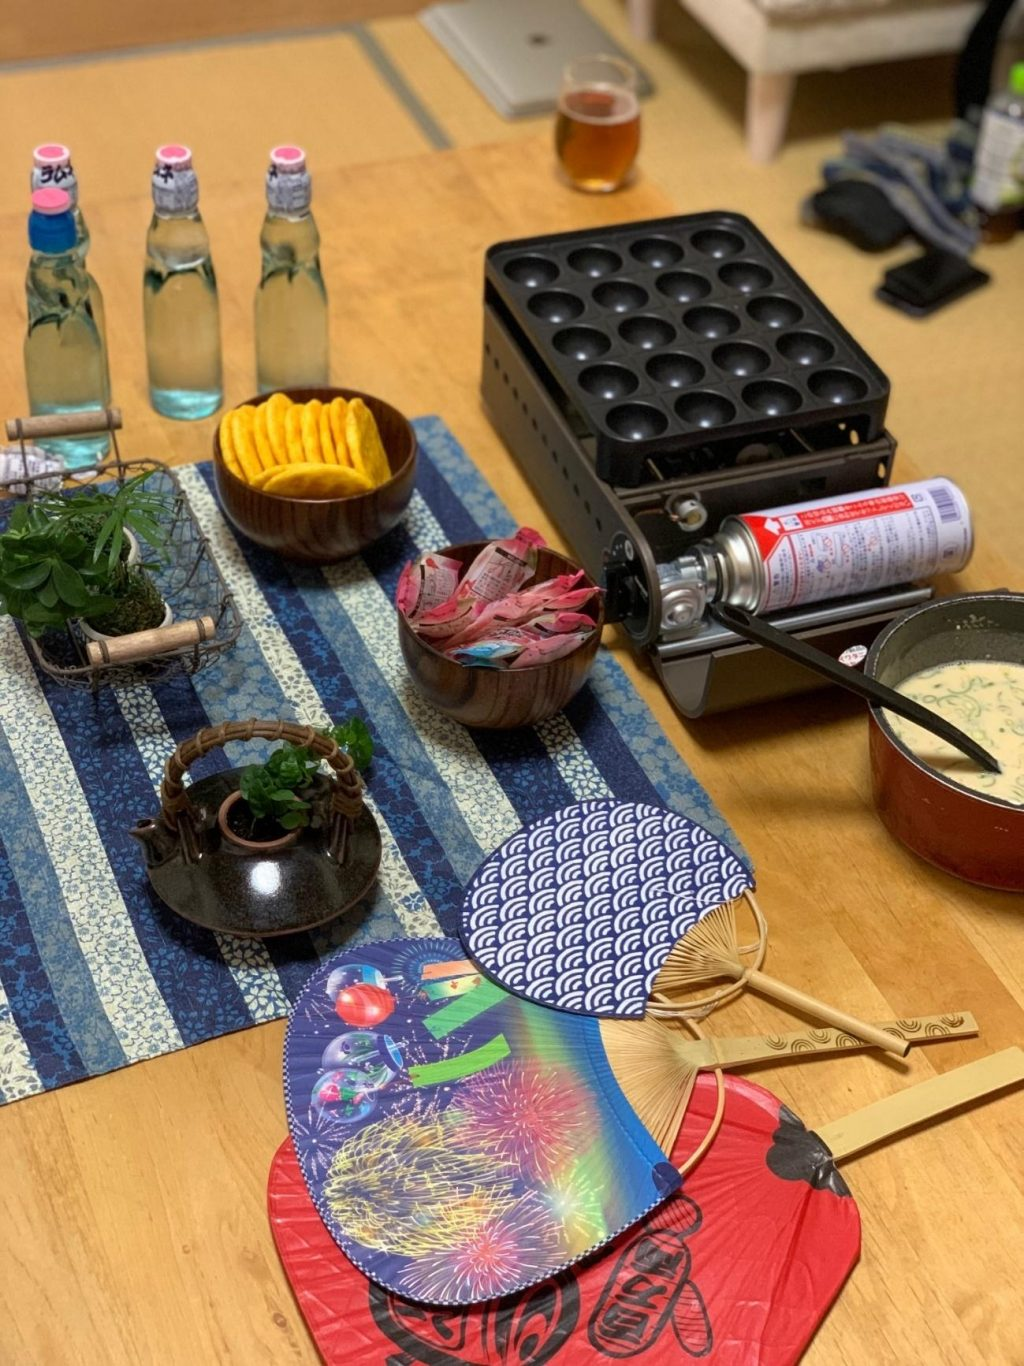 everything set up for our at-home Natsu matsuri festival